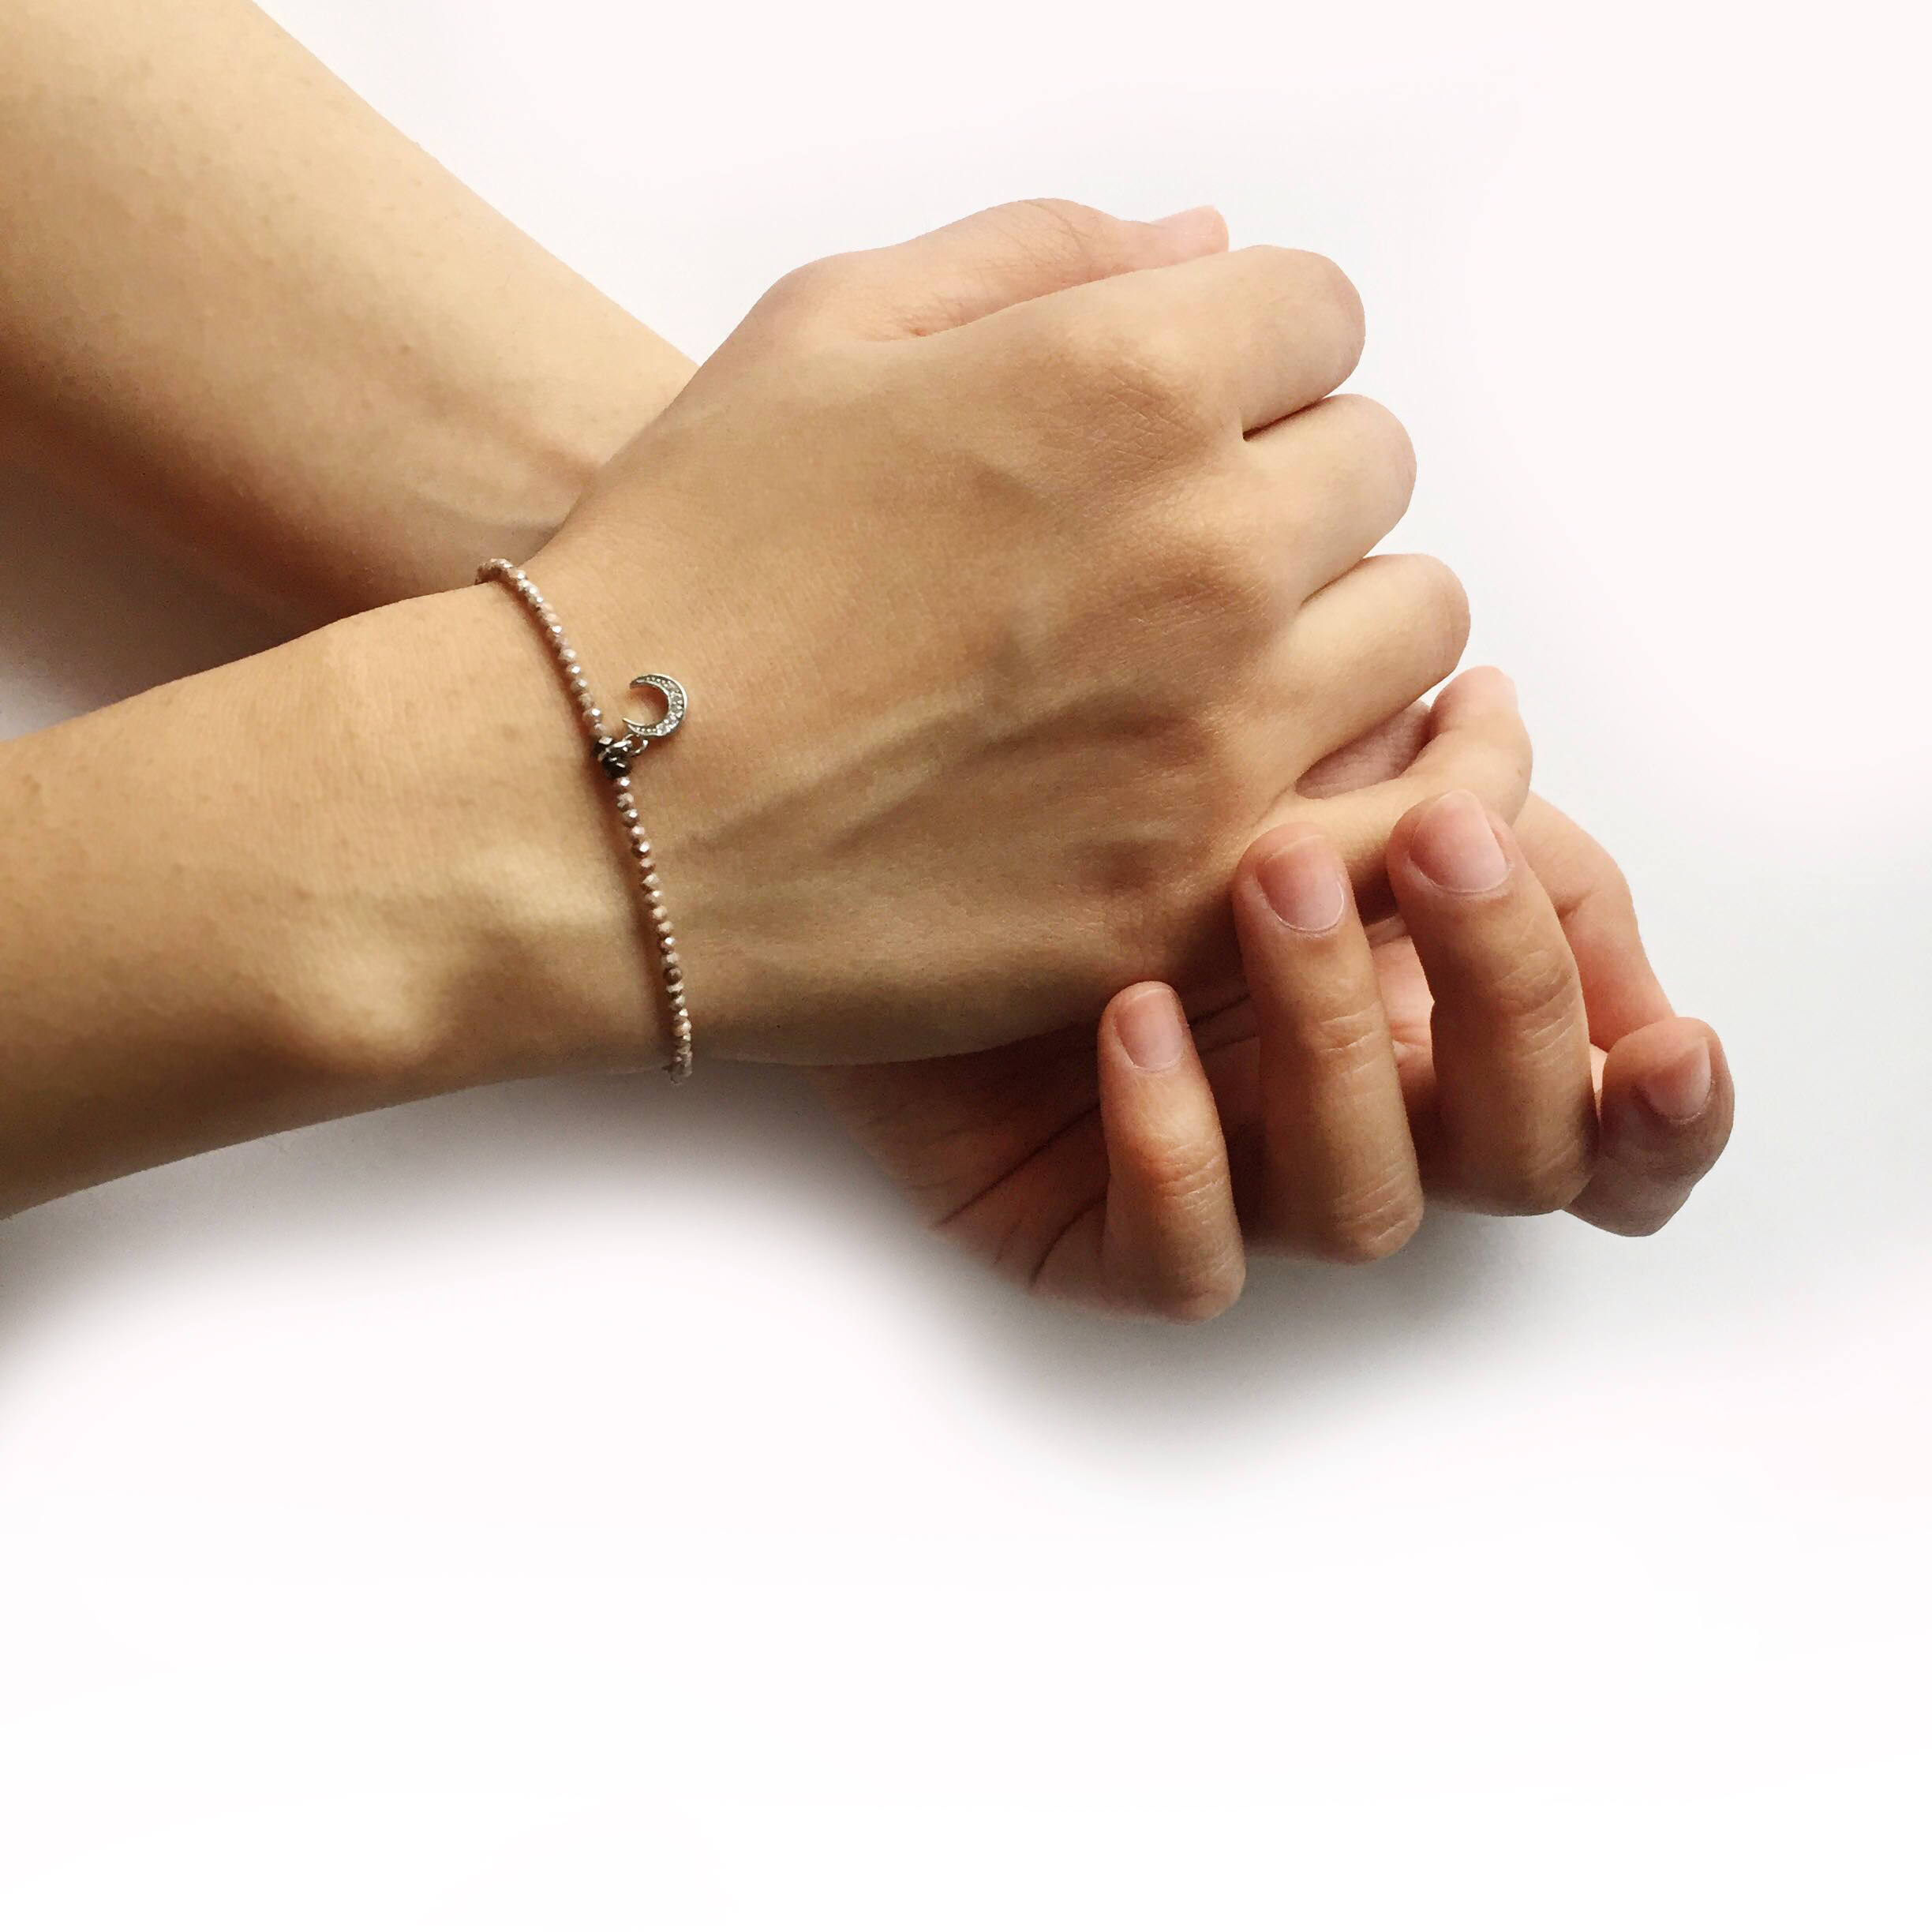 Making Jewellery As A Self-care Practice - Stone Bracelet by Aiyana Jewelry